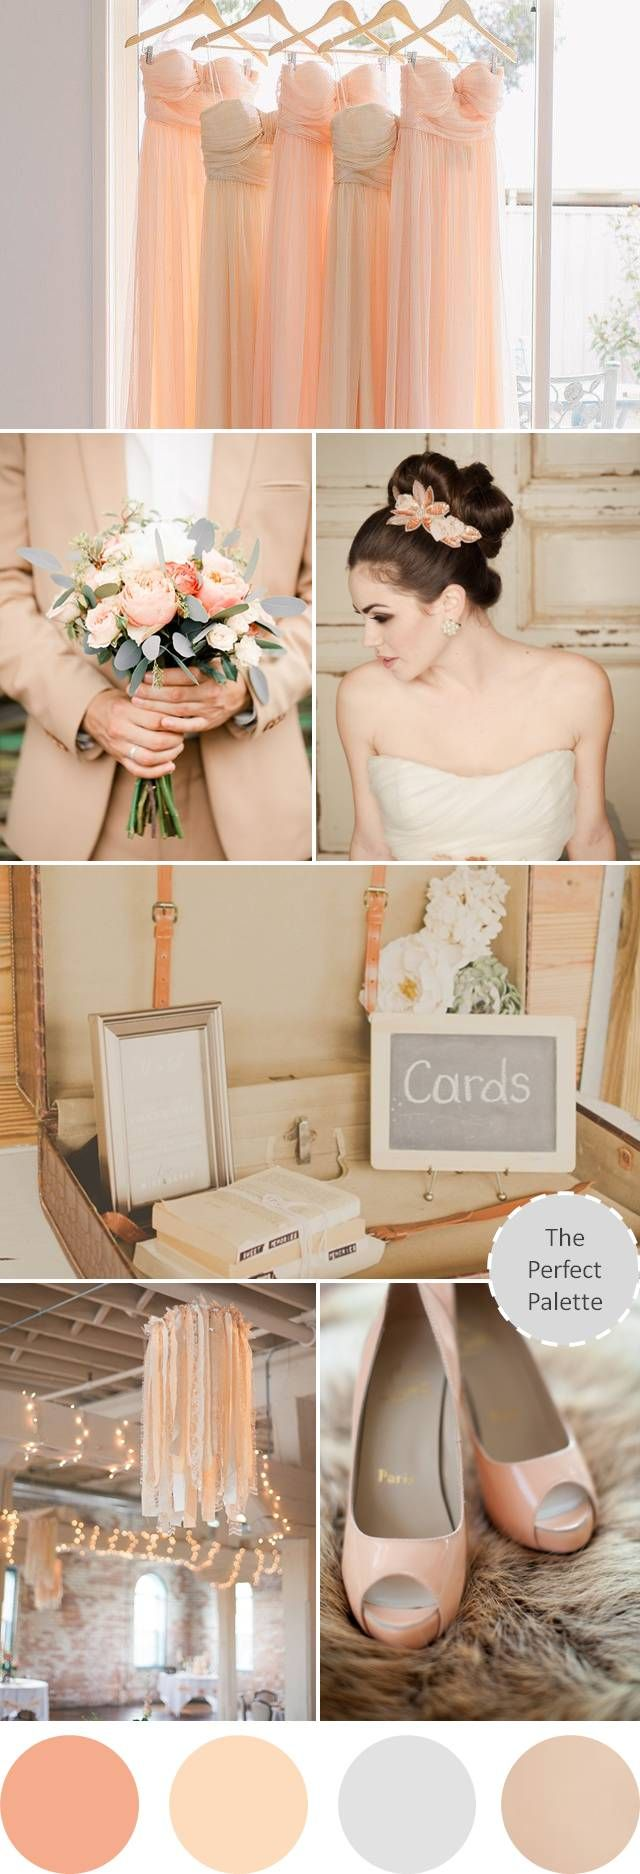 Pretty Peachy | A Palette of Peach, Gray and Beige - to see more: http://www.theperfectpalette.com/2014/02/pretty-peachy-palette-of-peach-gray-and.html